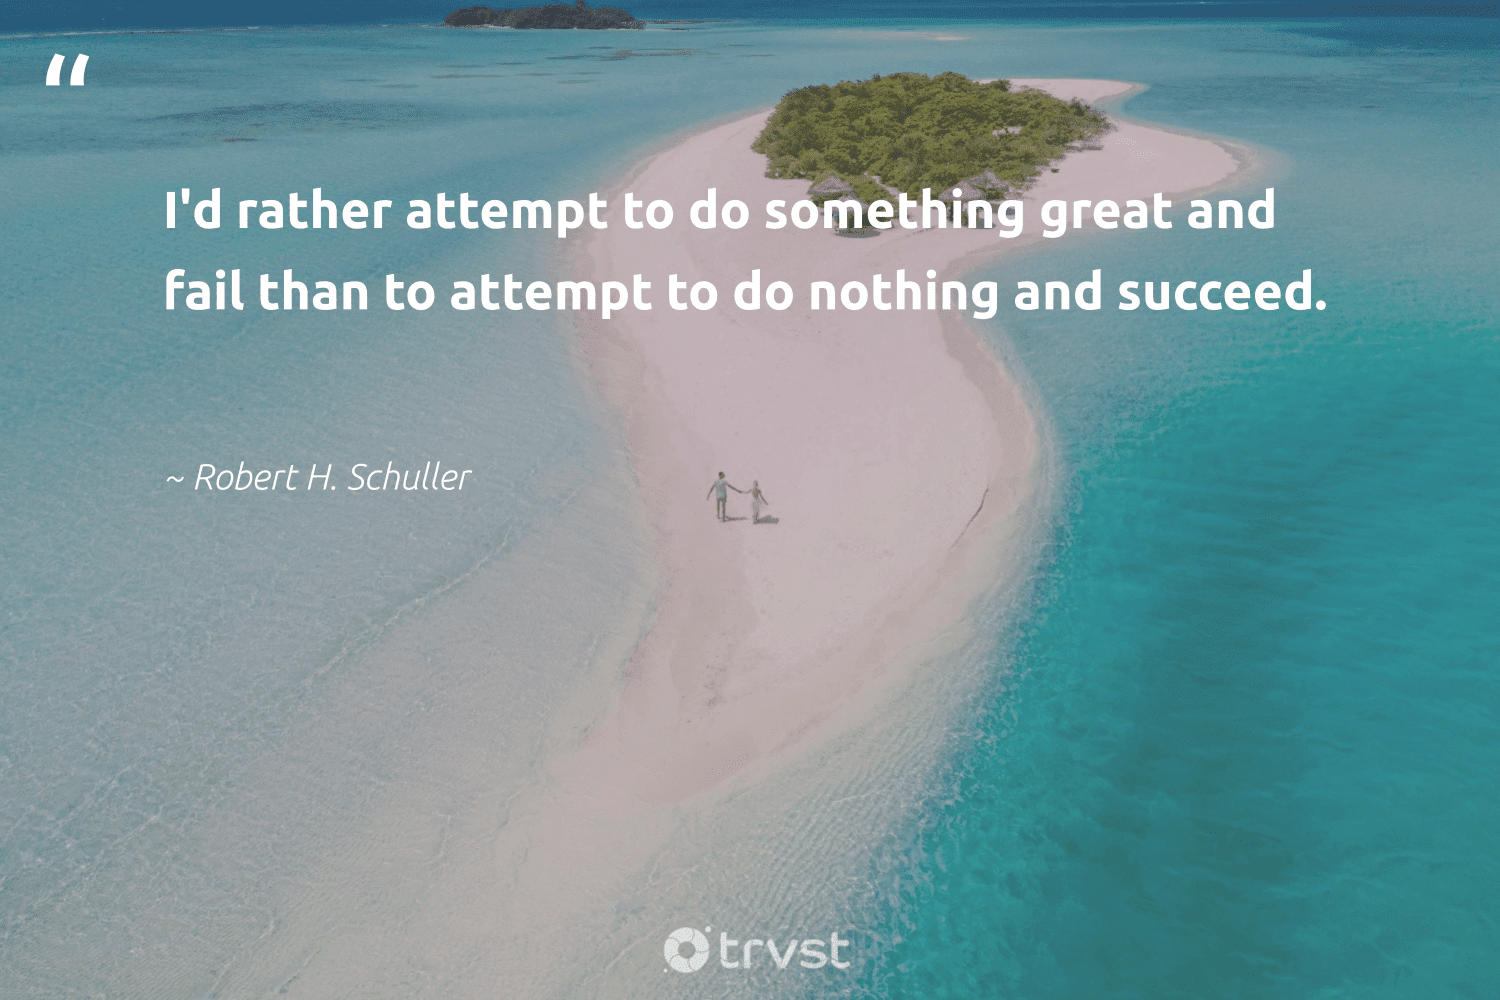 """""""I'd rather attempt to do something great and fail than to attempt to do nothing and succeed.""""  - Robert H. Schuller #trvst #quotes #dosomething #begreat #impact #futureofwork #collectiveaction #softskills #bethechange #nevergiveup #takeaction #changetheworld"""